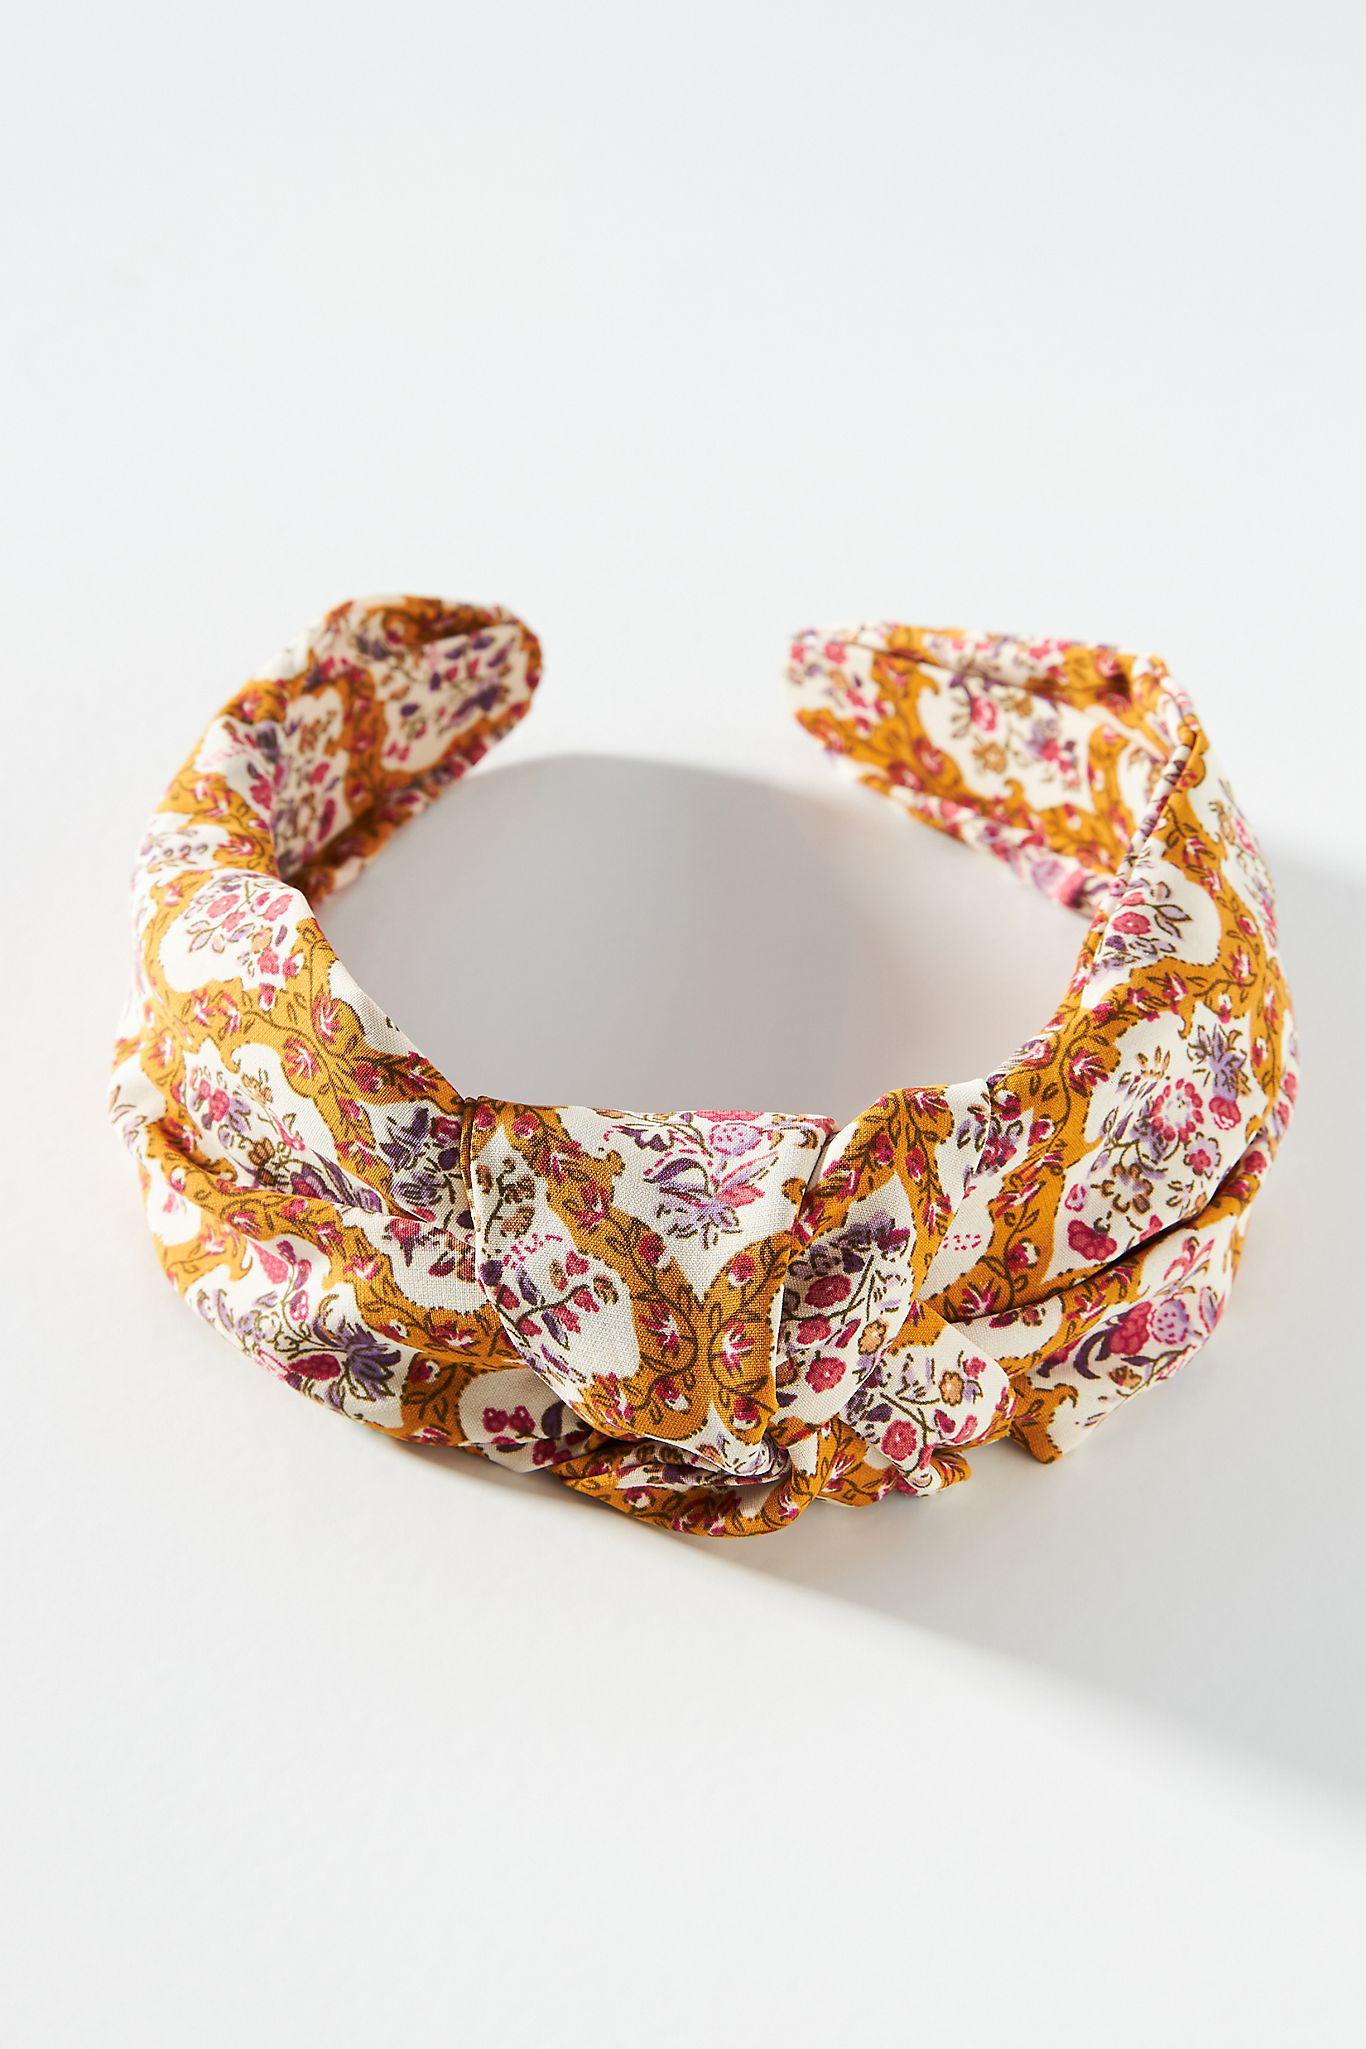 Tile Knotted Headband